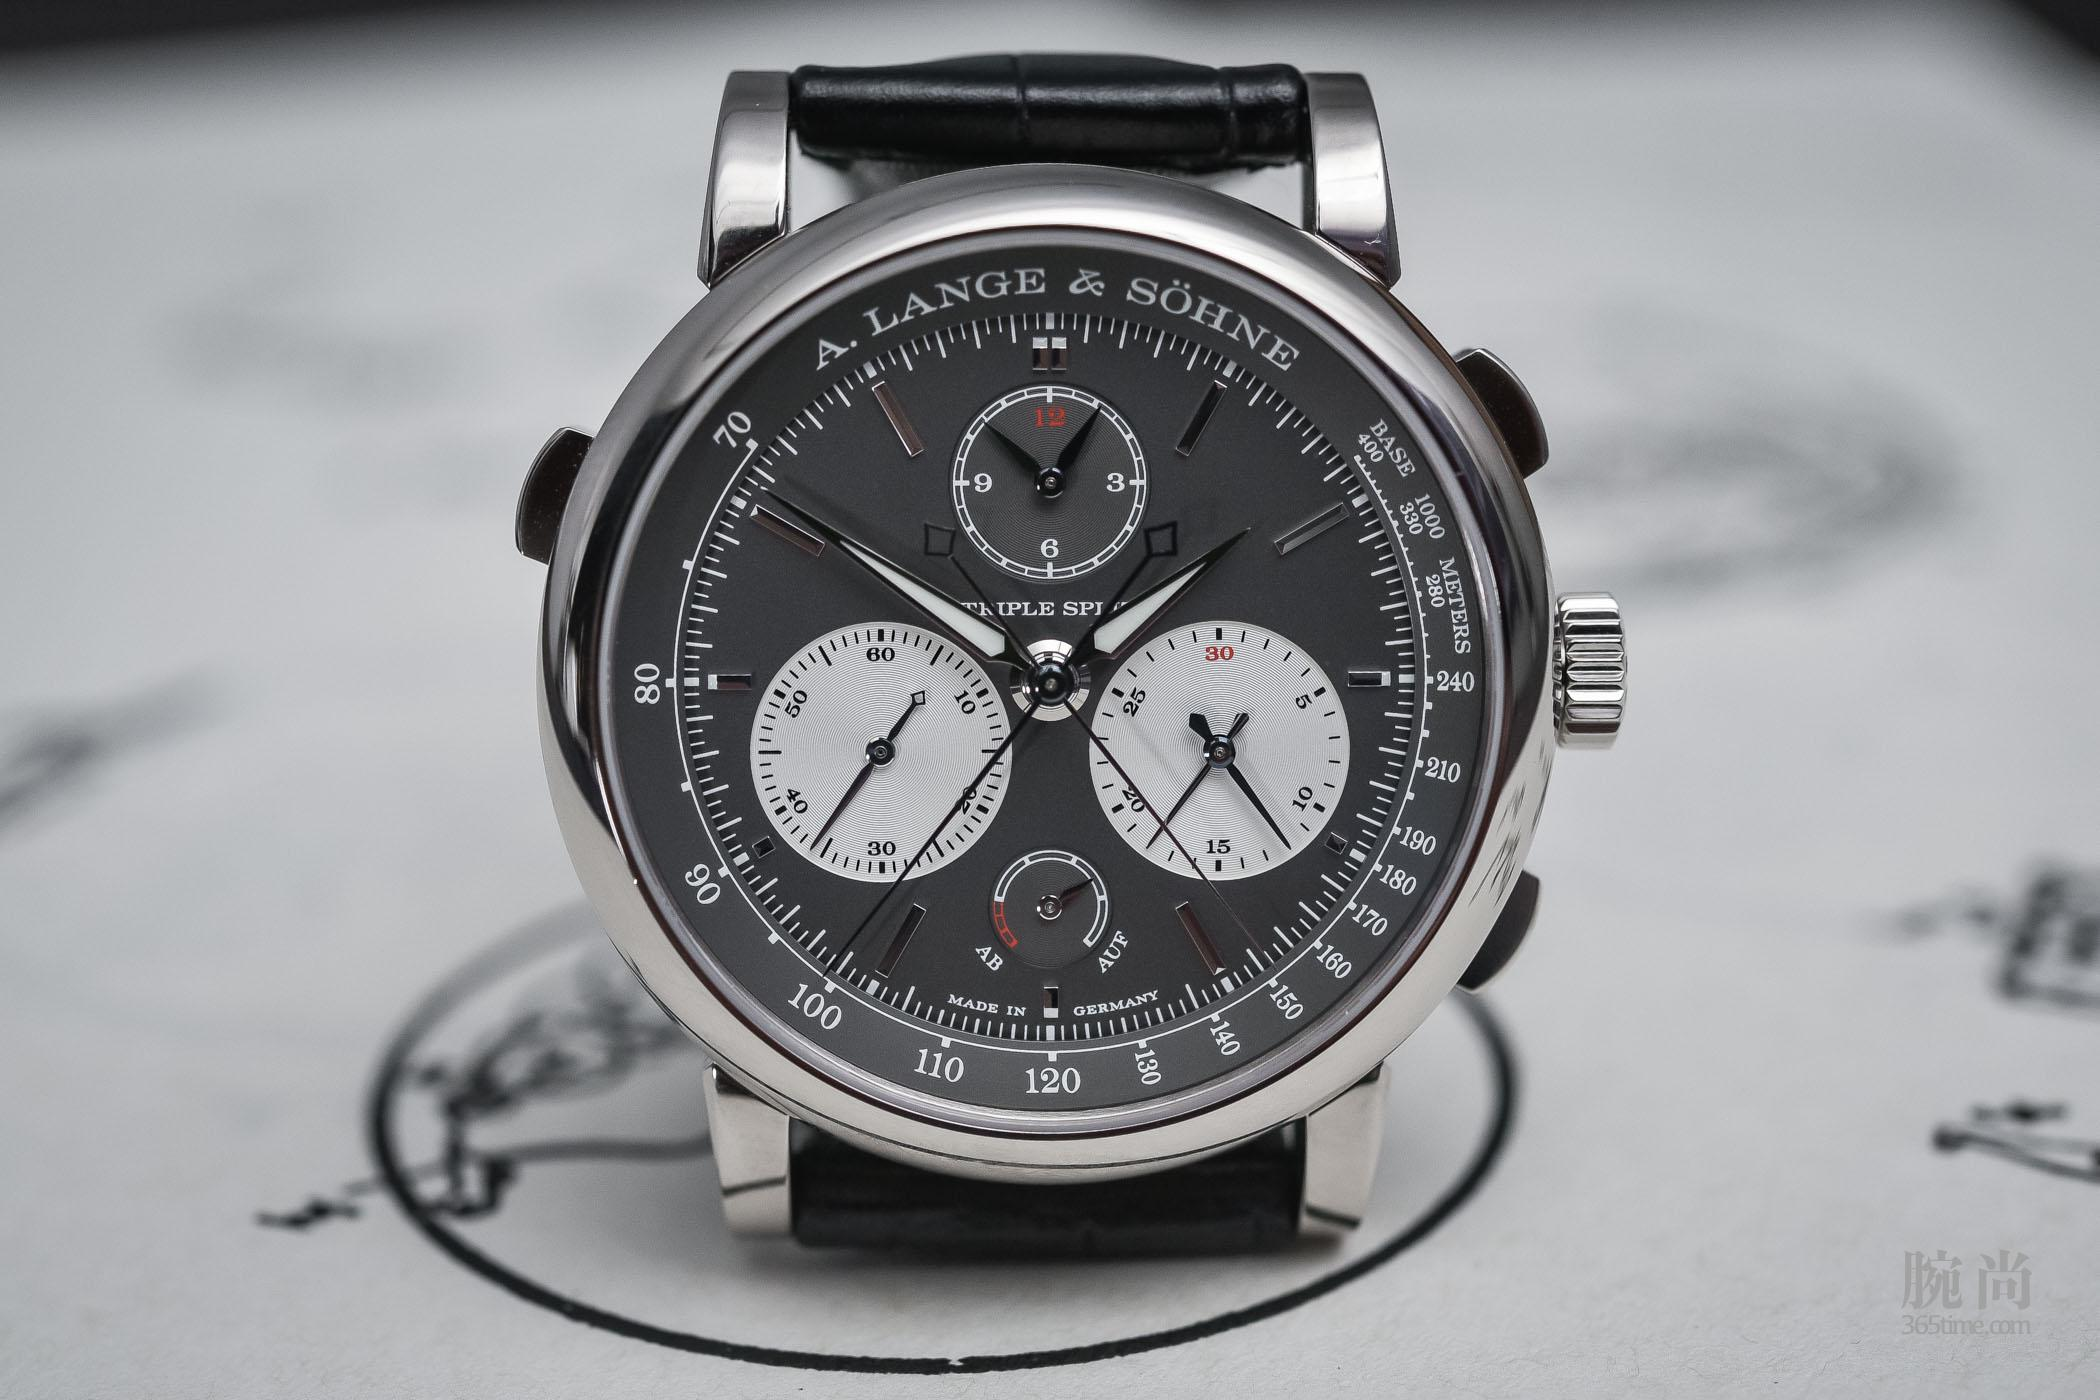 A.-Lange-and-Sohne-Triple-Split-SIHH-2018-Review-3.jpg